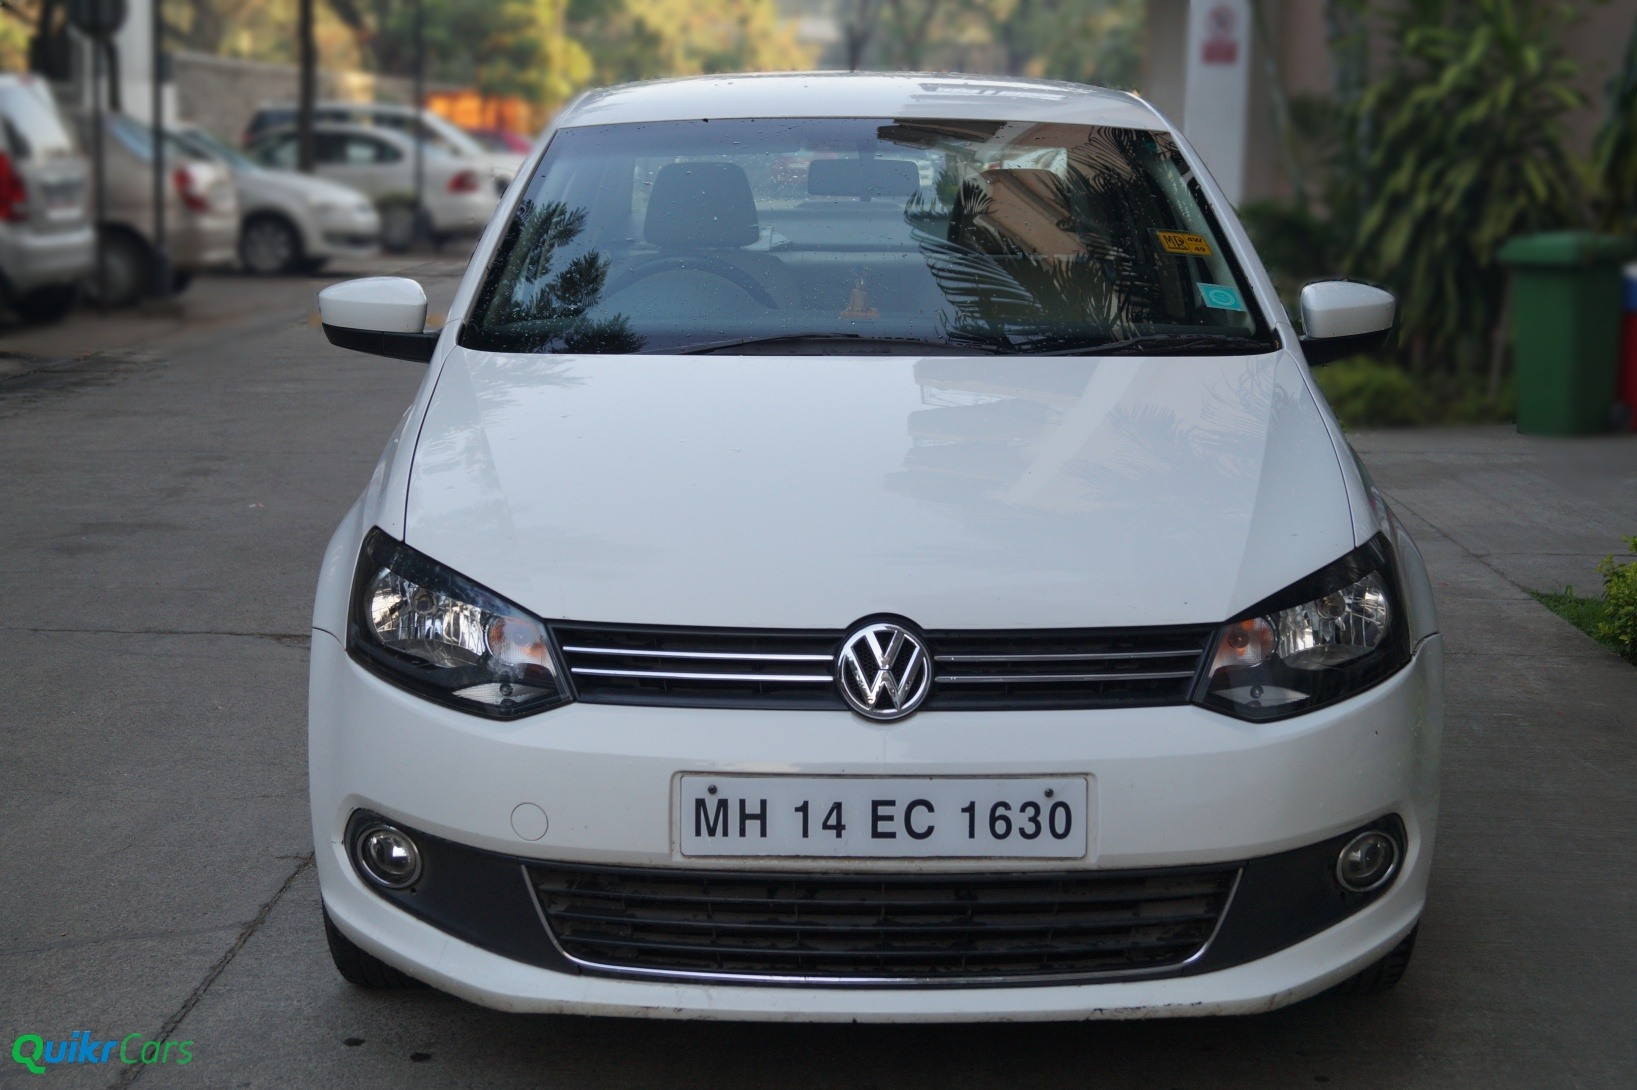 VW Vento front